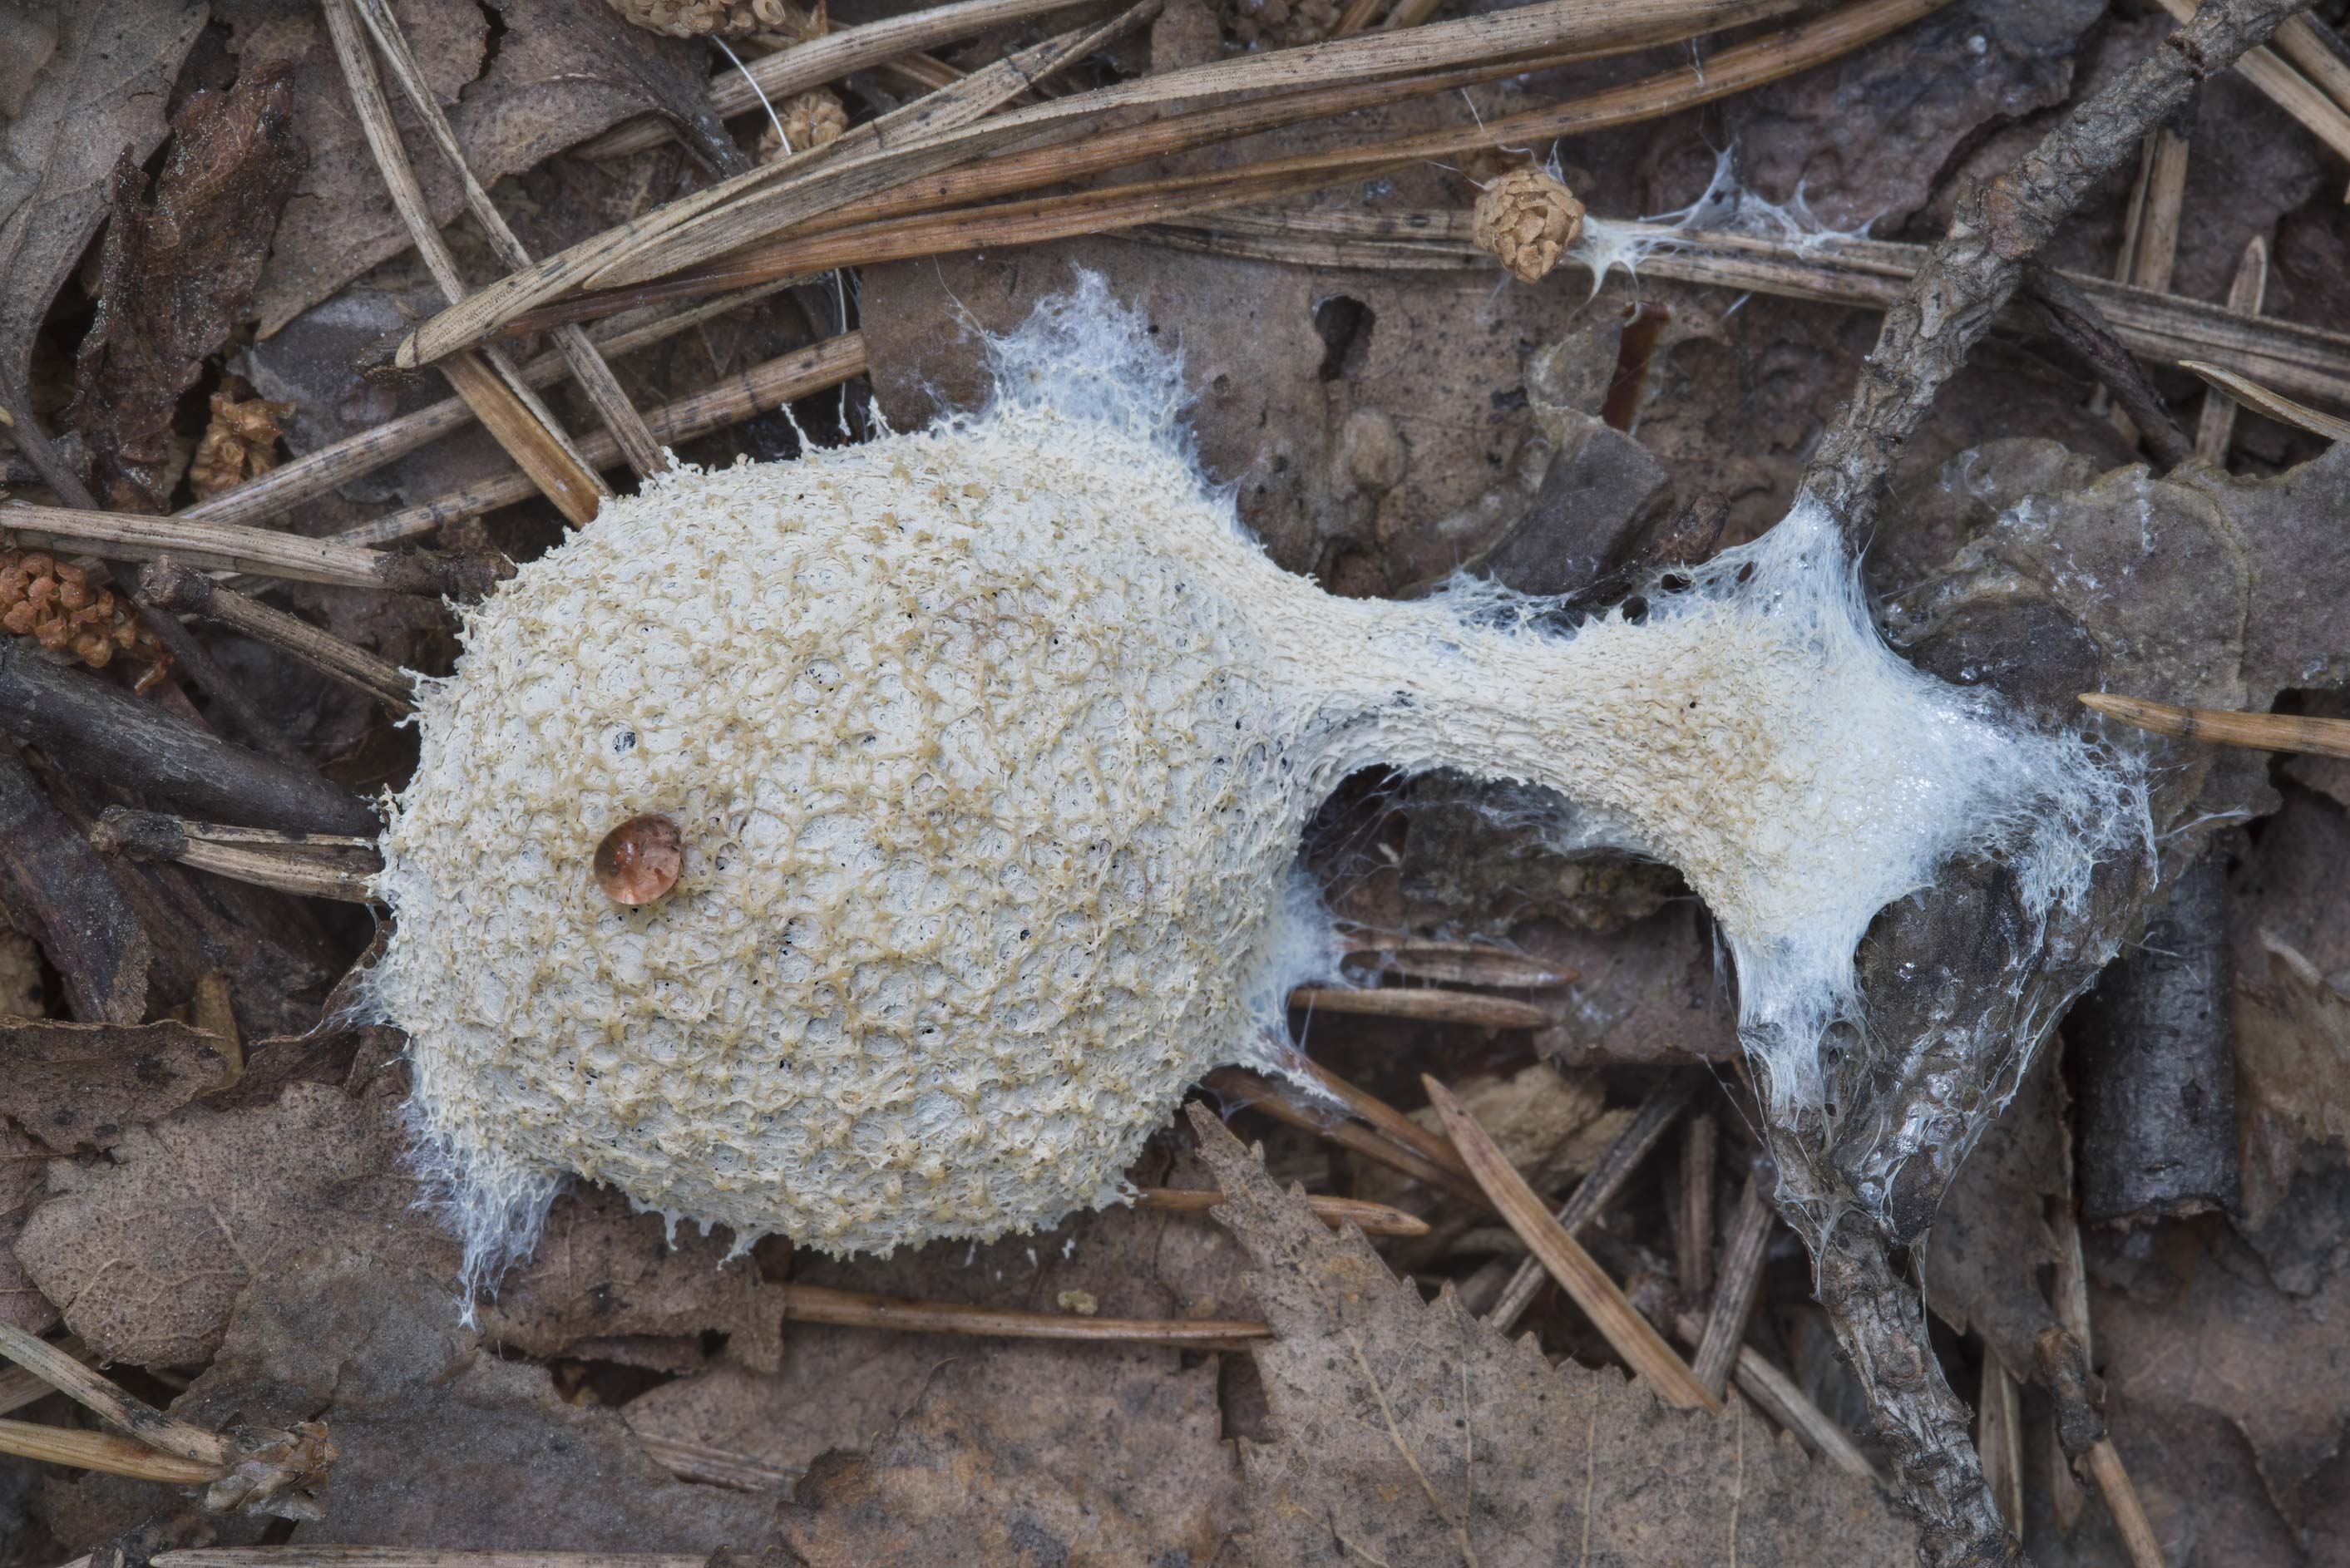 Dog sick slime mould (Mucilago crustacea) in Sosnovka Park. St.Petersburg, Russia